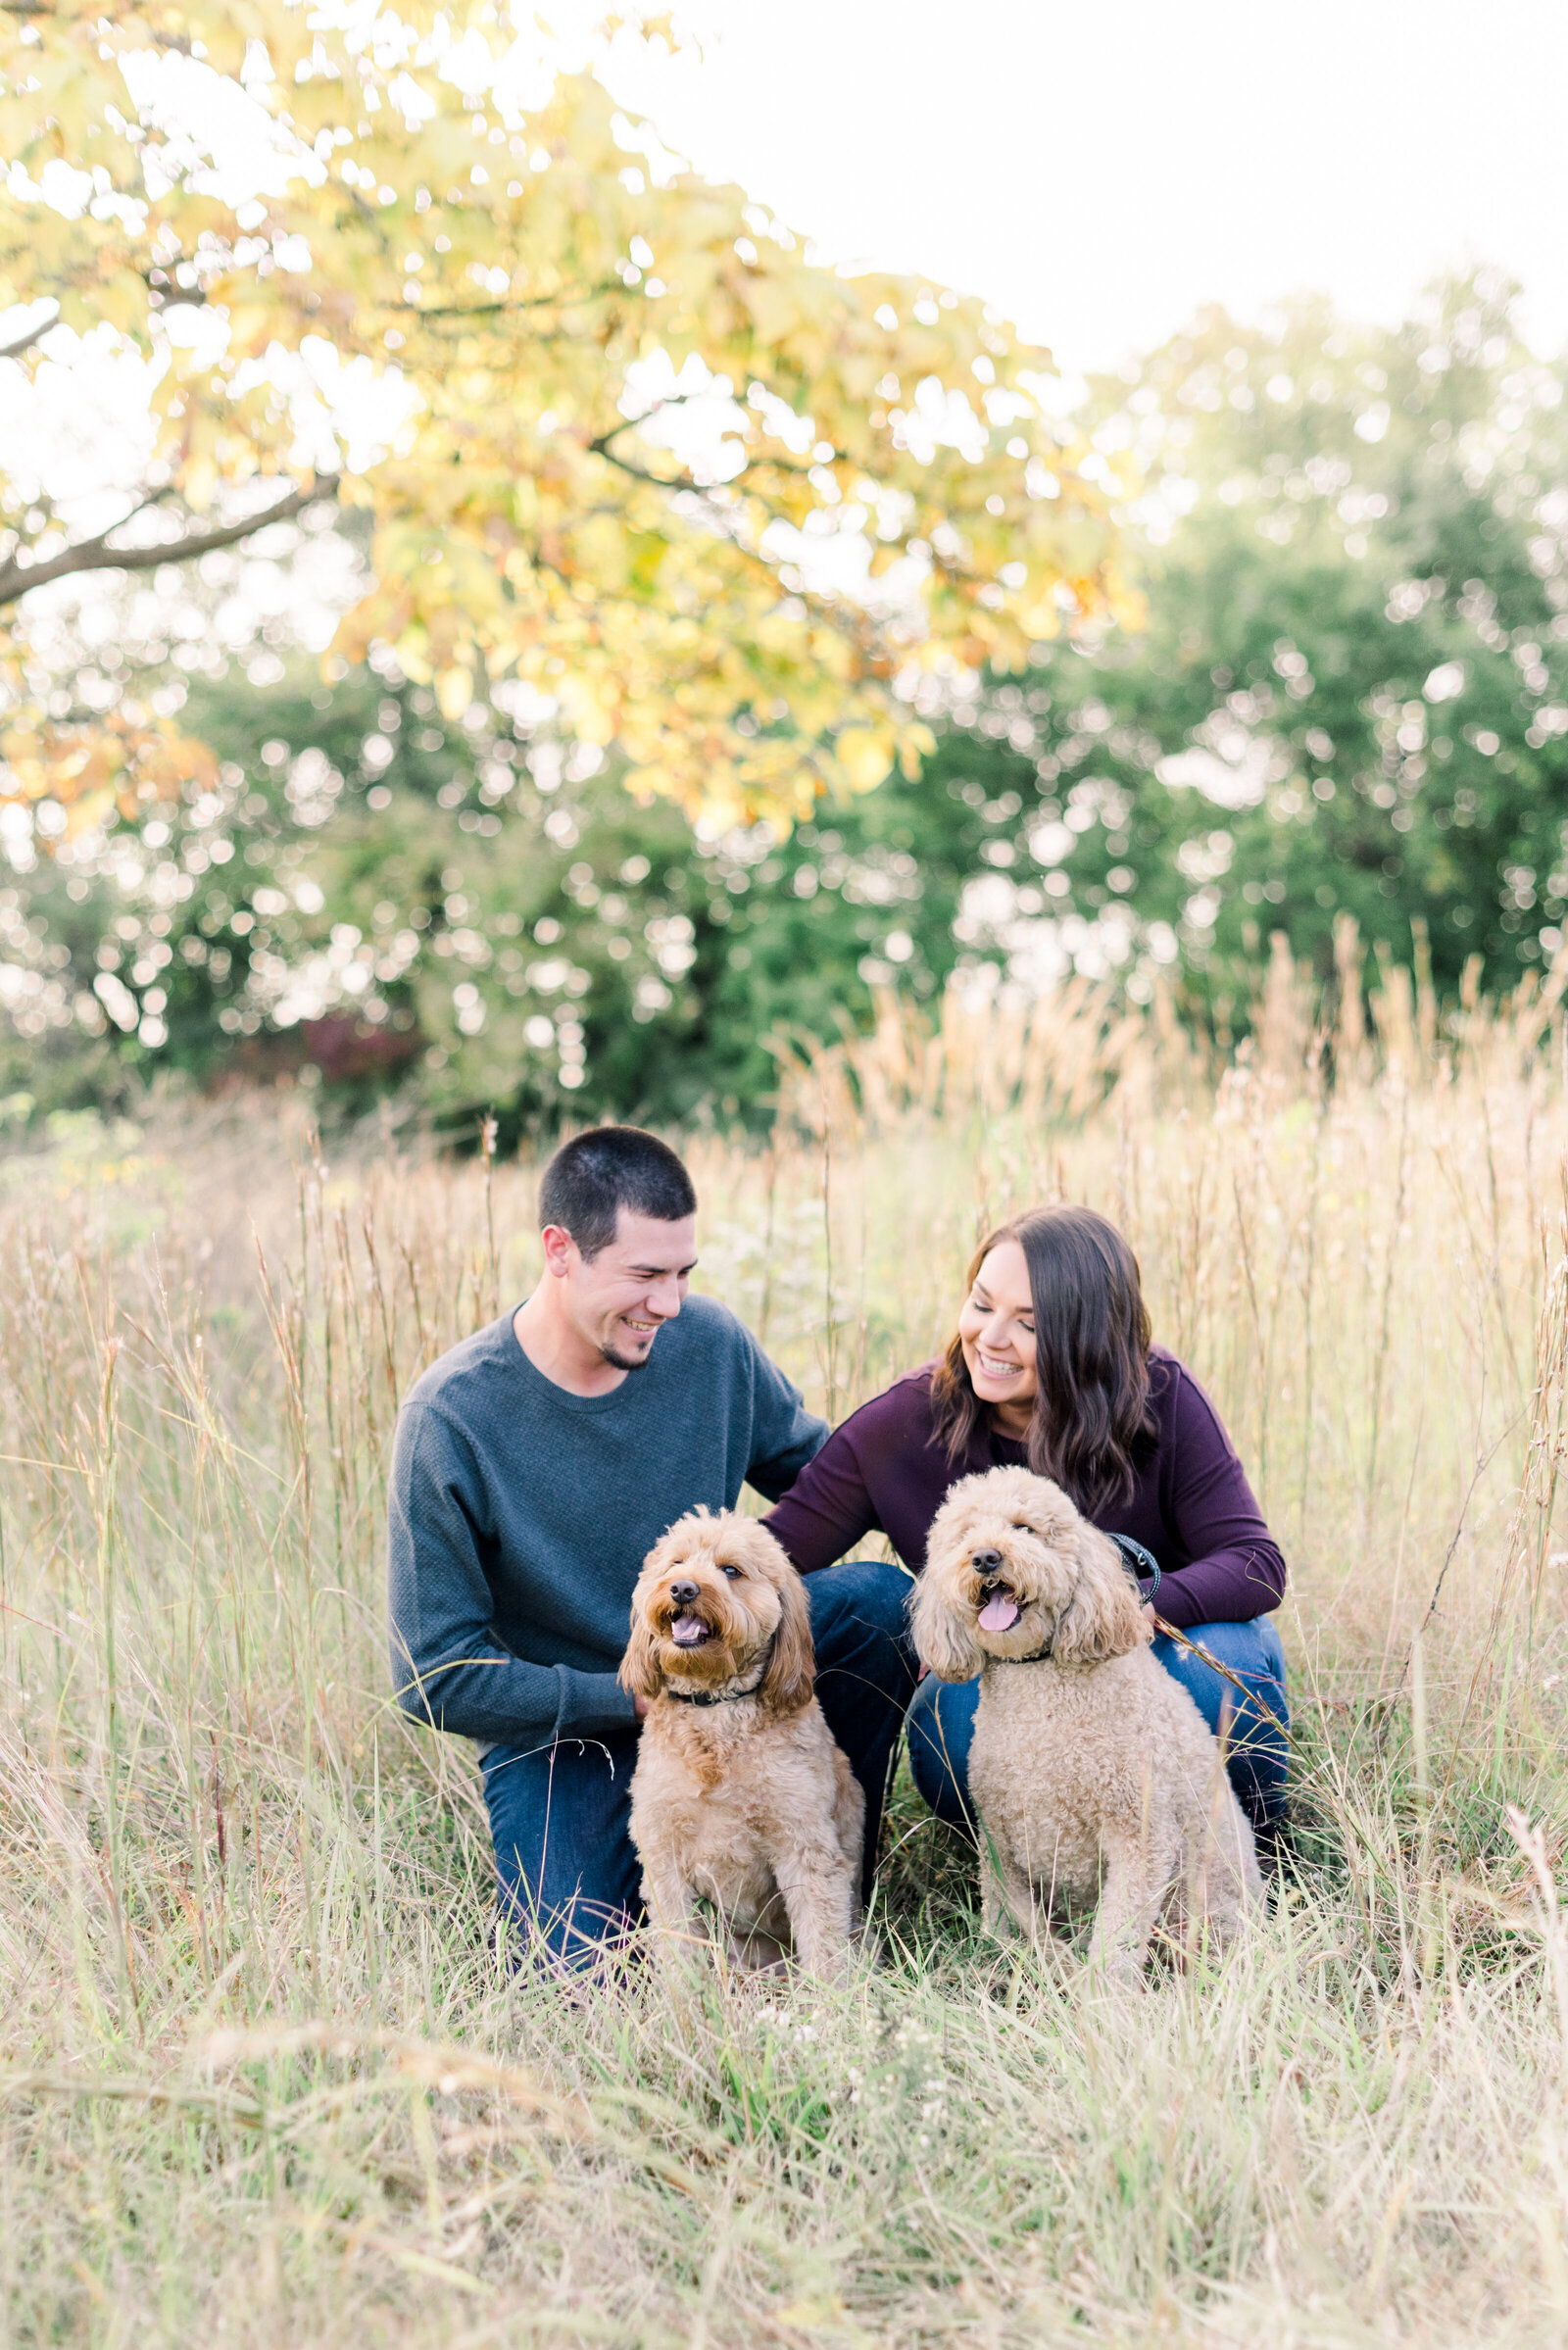 Sunset_Family_Photoshoot_Shawnee_Mission_Park_Kansas_City_Peterson2020-9